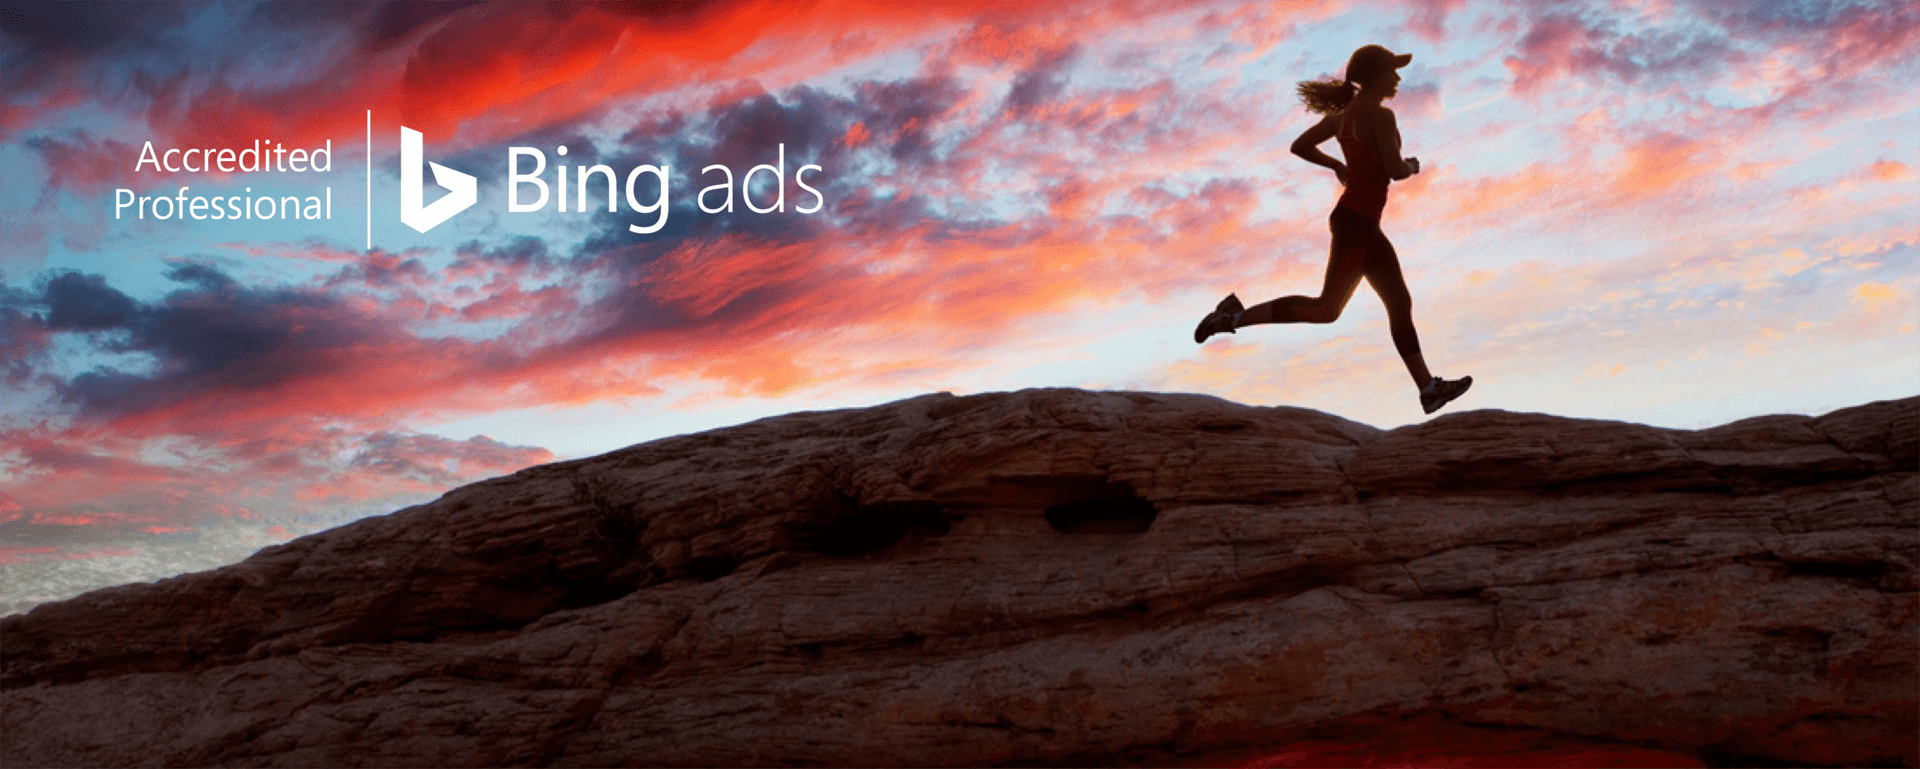 bing-ads-accredited-pro